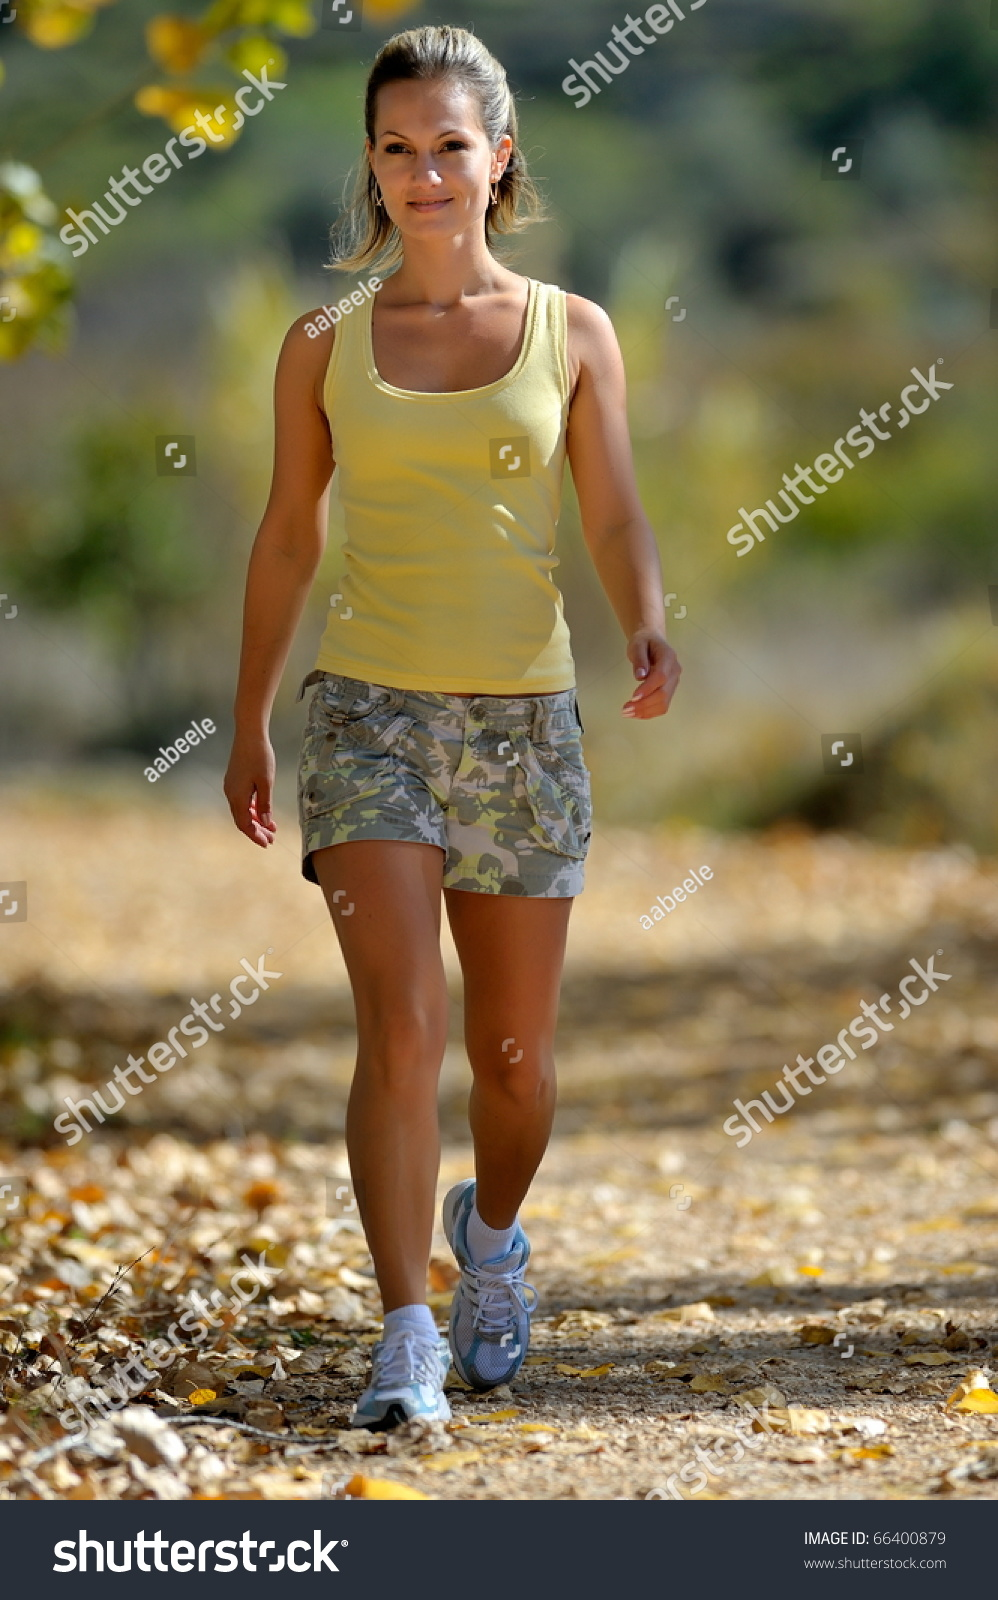 young woman walking park summer stock photo 66400879